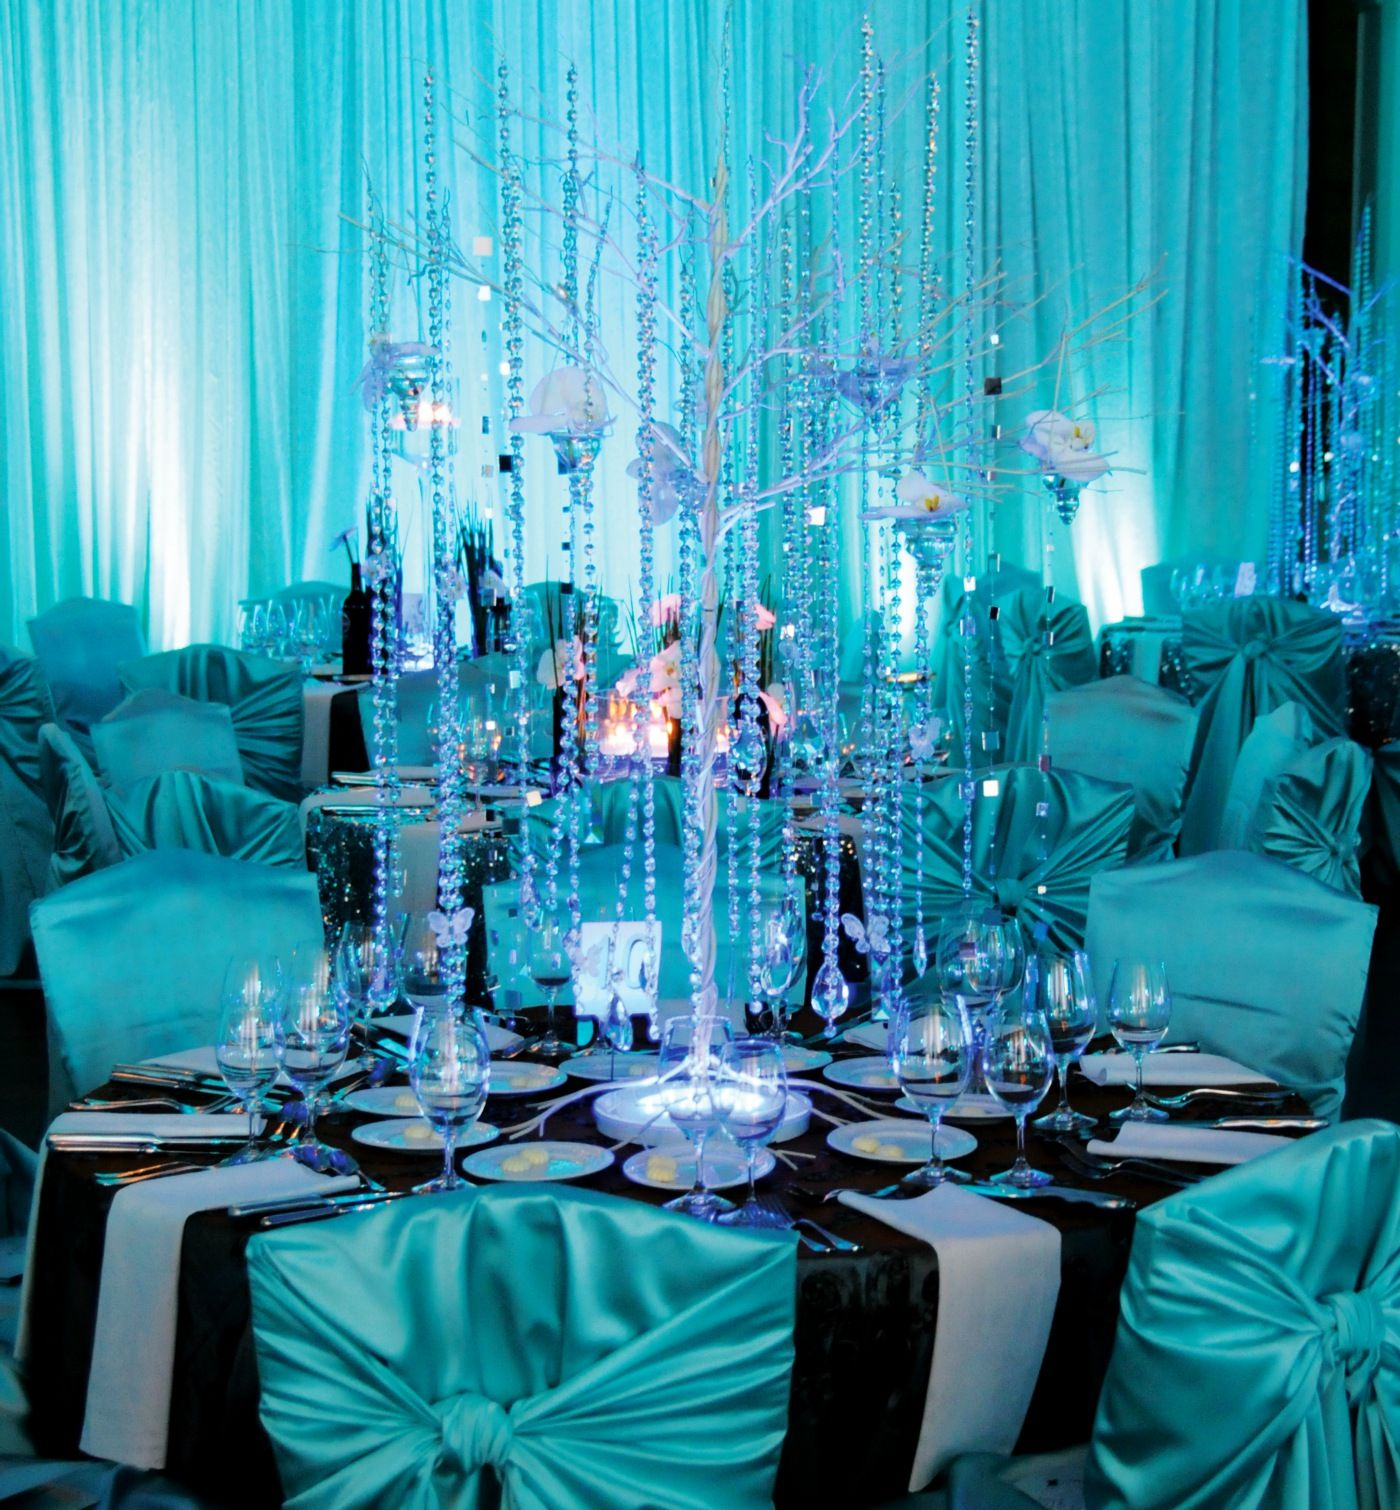 Tiffany Blue Wedding Decoration Ideas: Tiffany Blue With Black & White /// #sparkle #tree